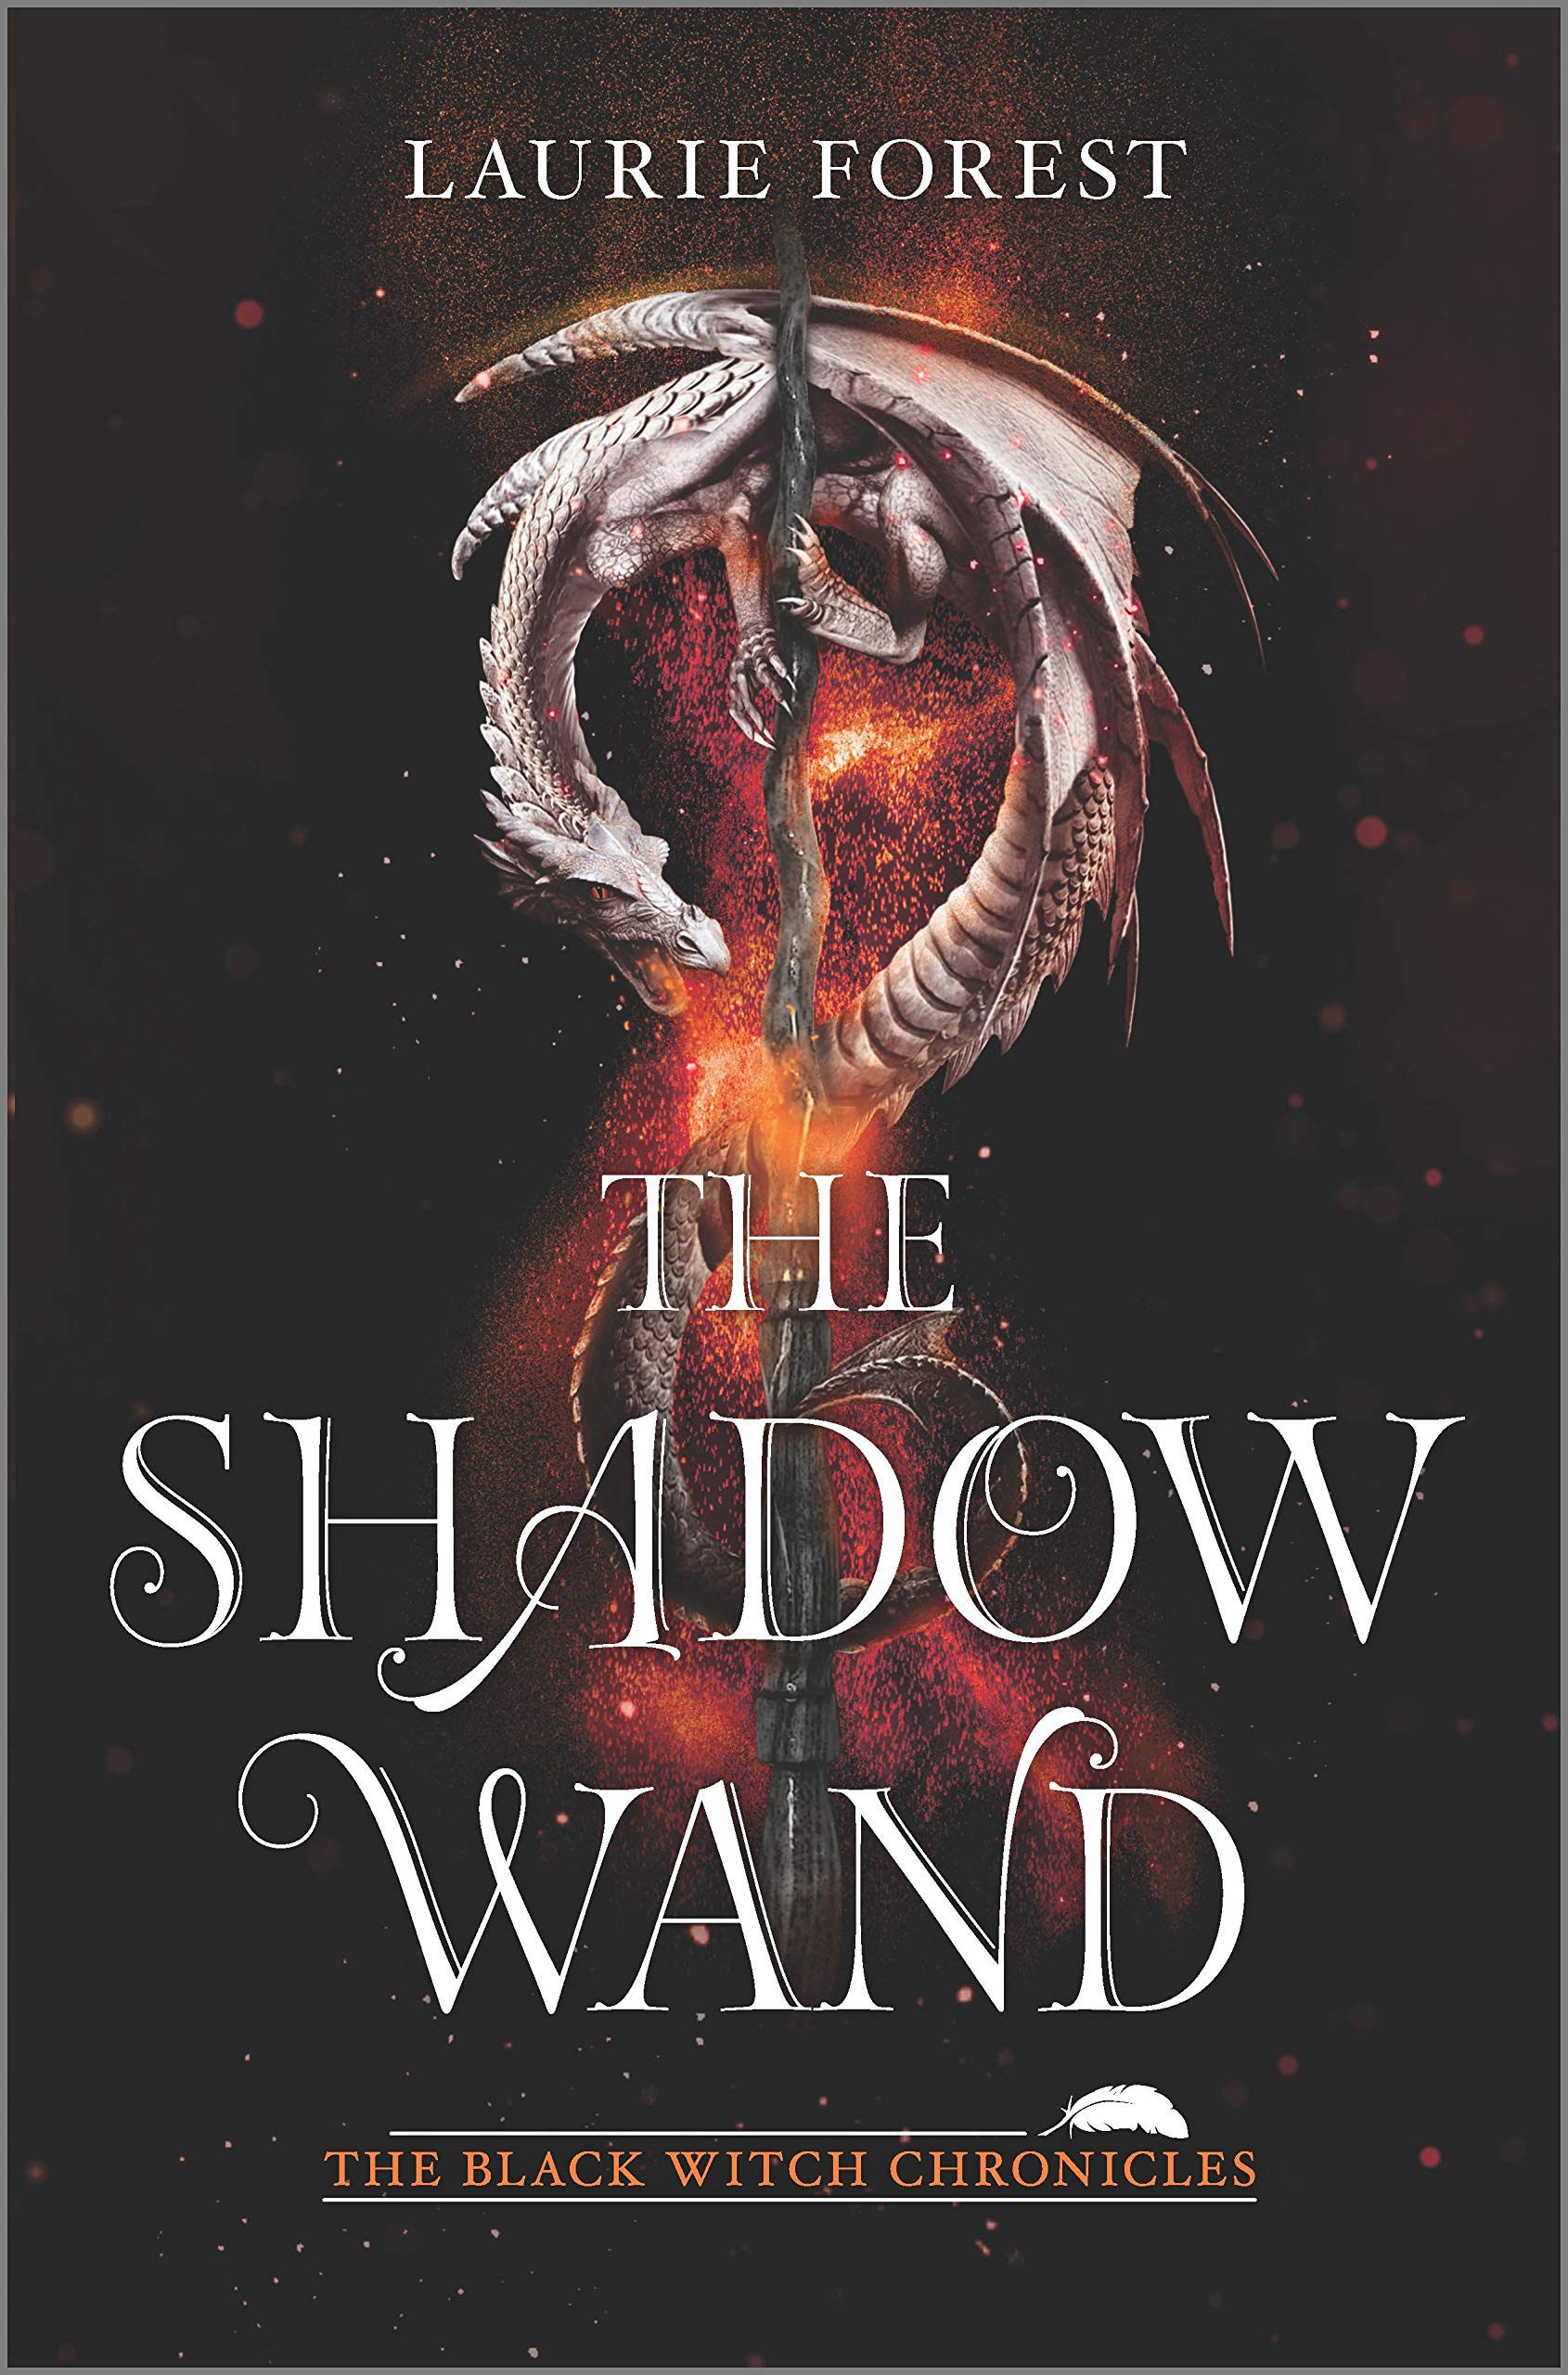 Amazon.com: The Shadow Wand (The Black Witch Chronicles ...